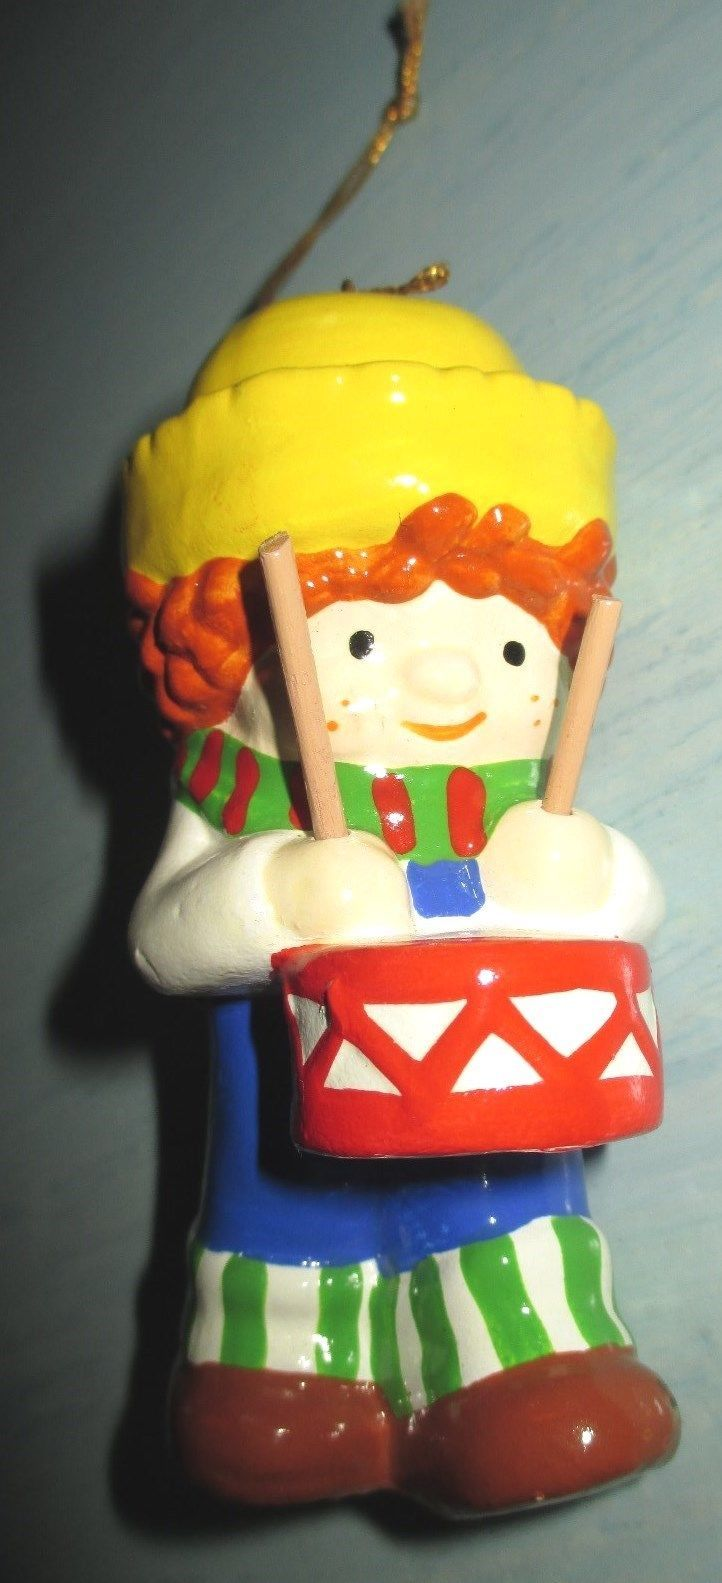 Vintagestrawberry · Huckleberry Pievintage Strawberry  Shortcakechristmas Ornament